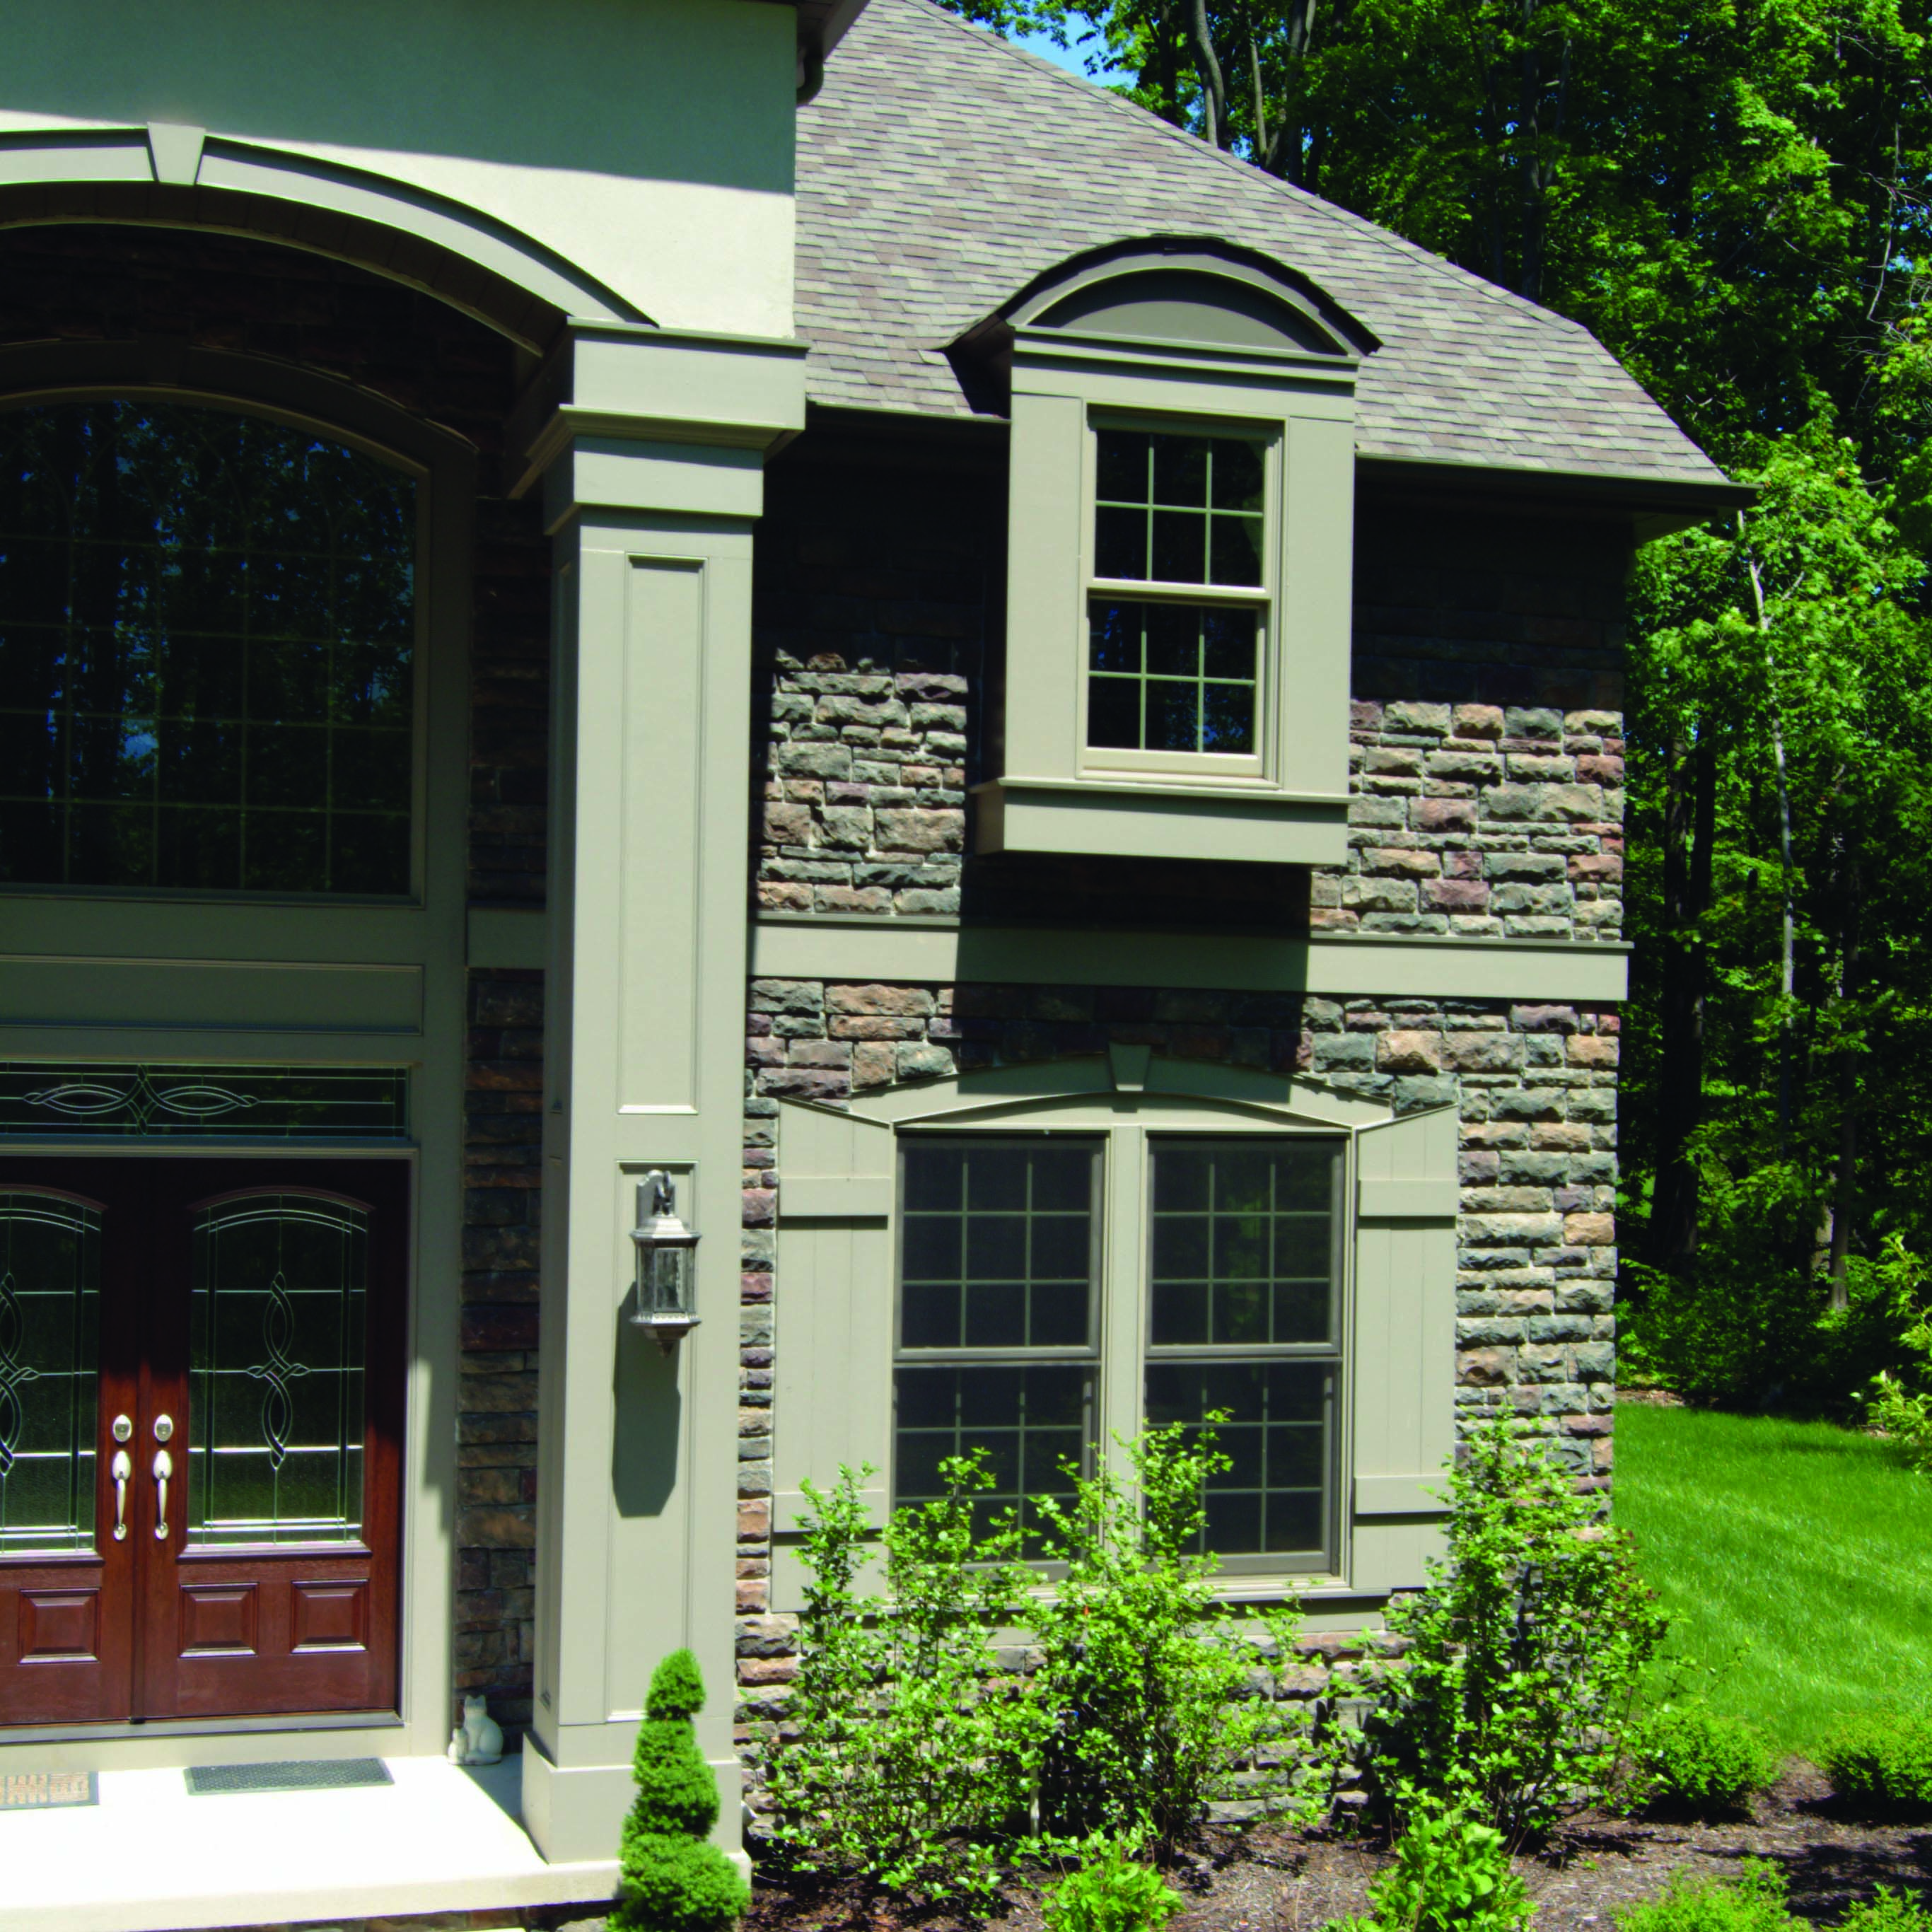 MIRATEC Siding & Trim